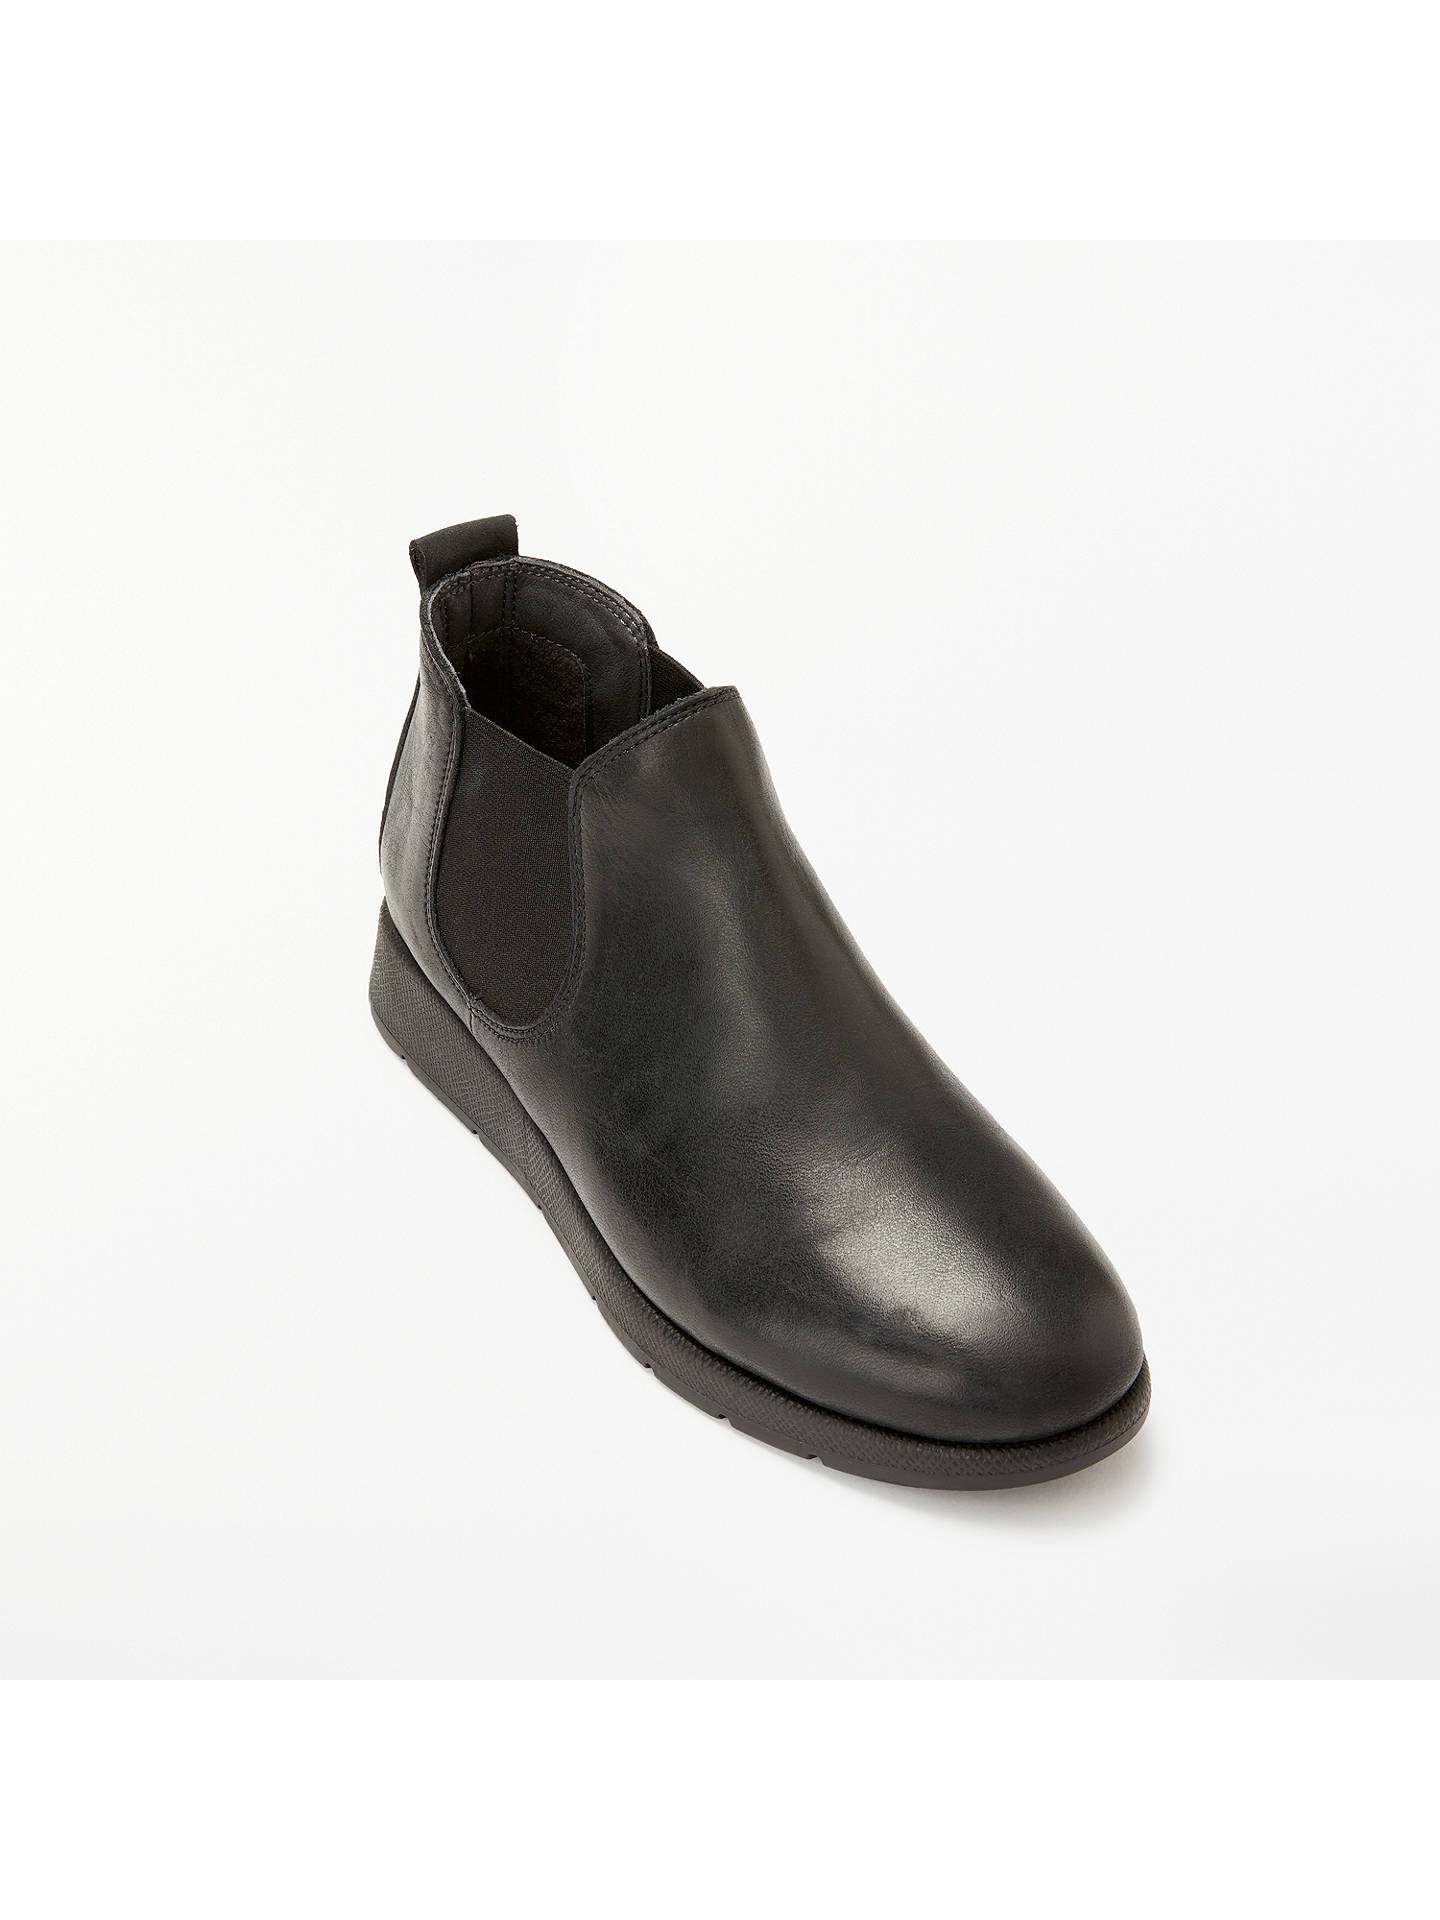 Buy John Lewis & Partners Designed for Comfort Yasmin Chelsea Boots, Black Leather, 4 Online at johnlewis.com